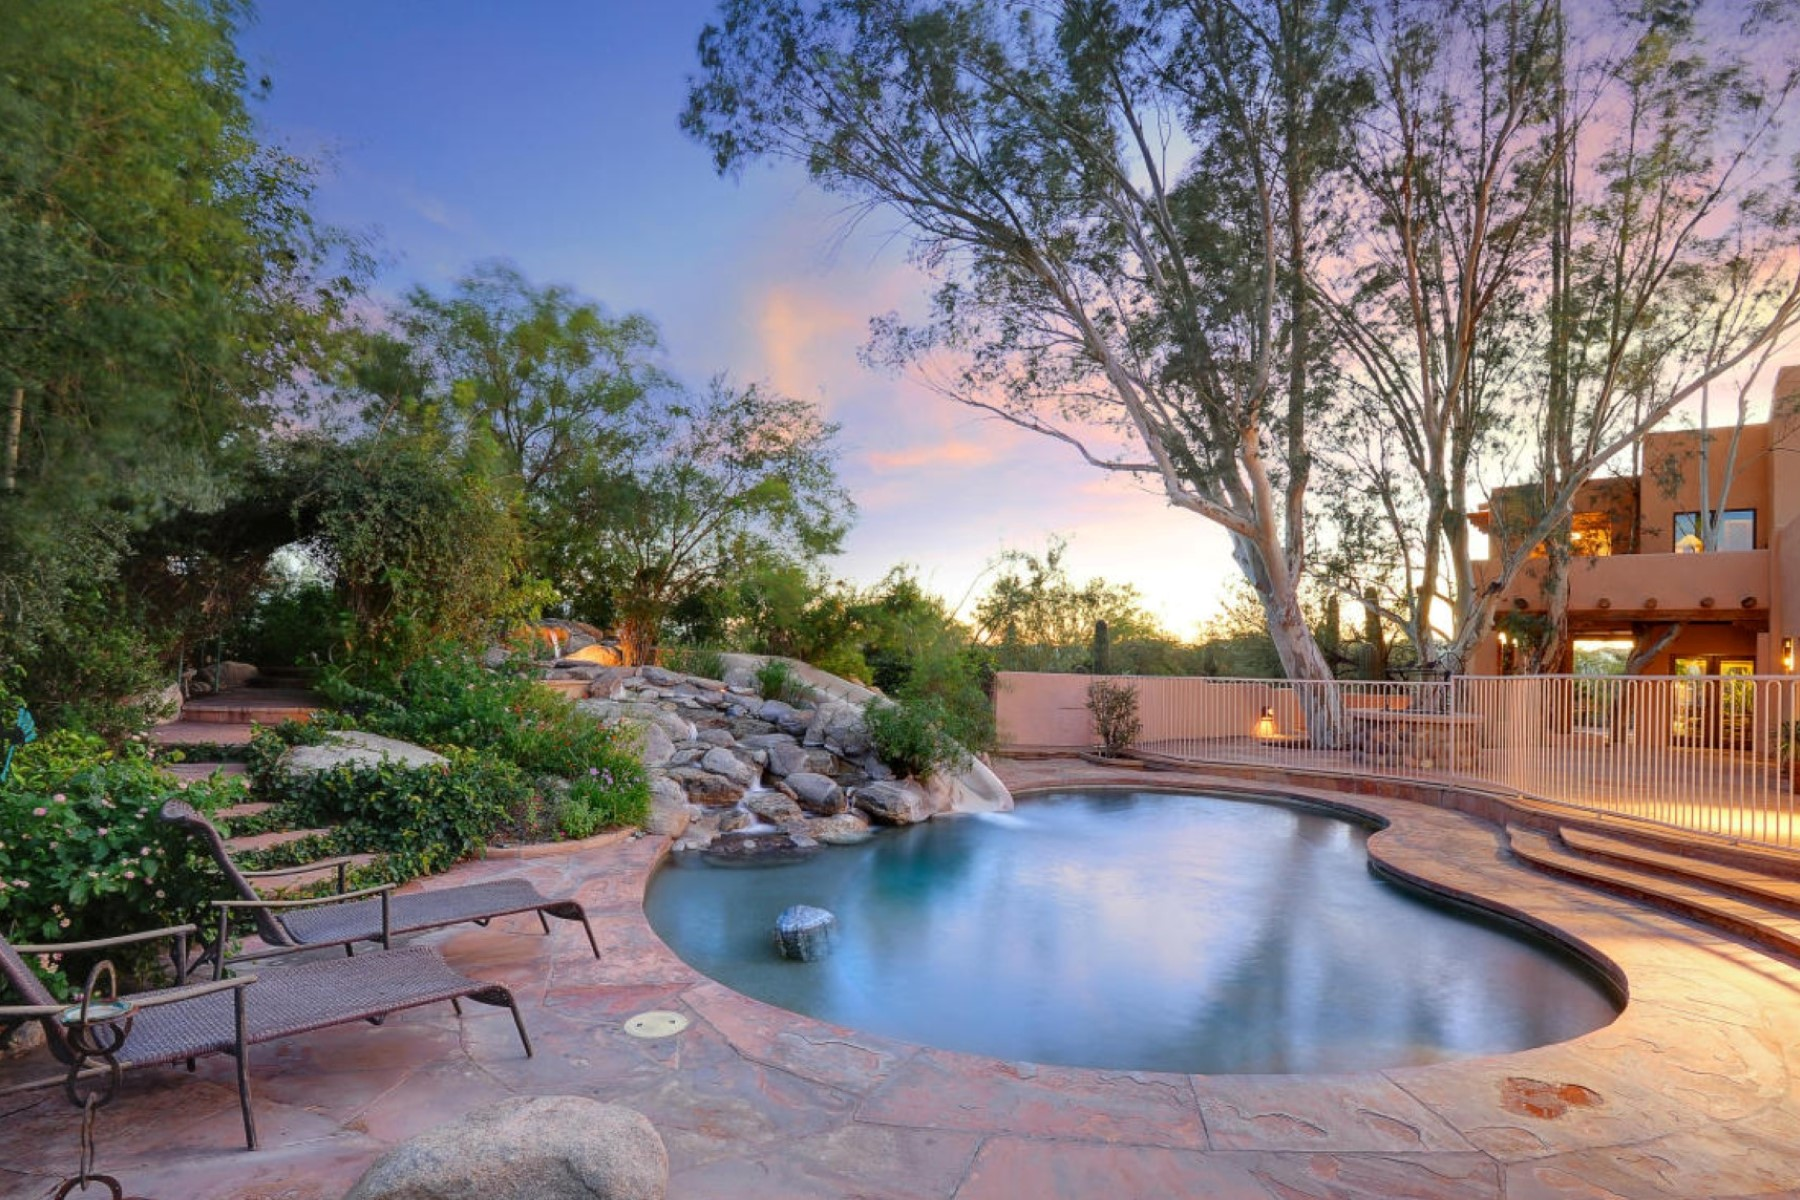 Maison unifamiliale pour l Vente à Custom Southwest Home That Feels Like A Resort Tucson, Arizona 85704 États-Unis